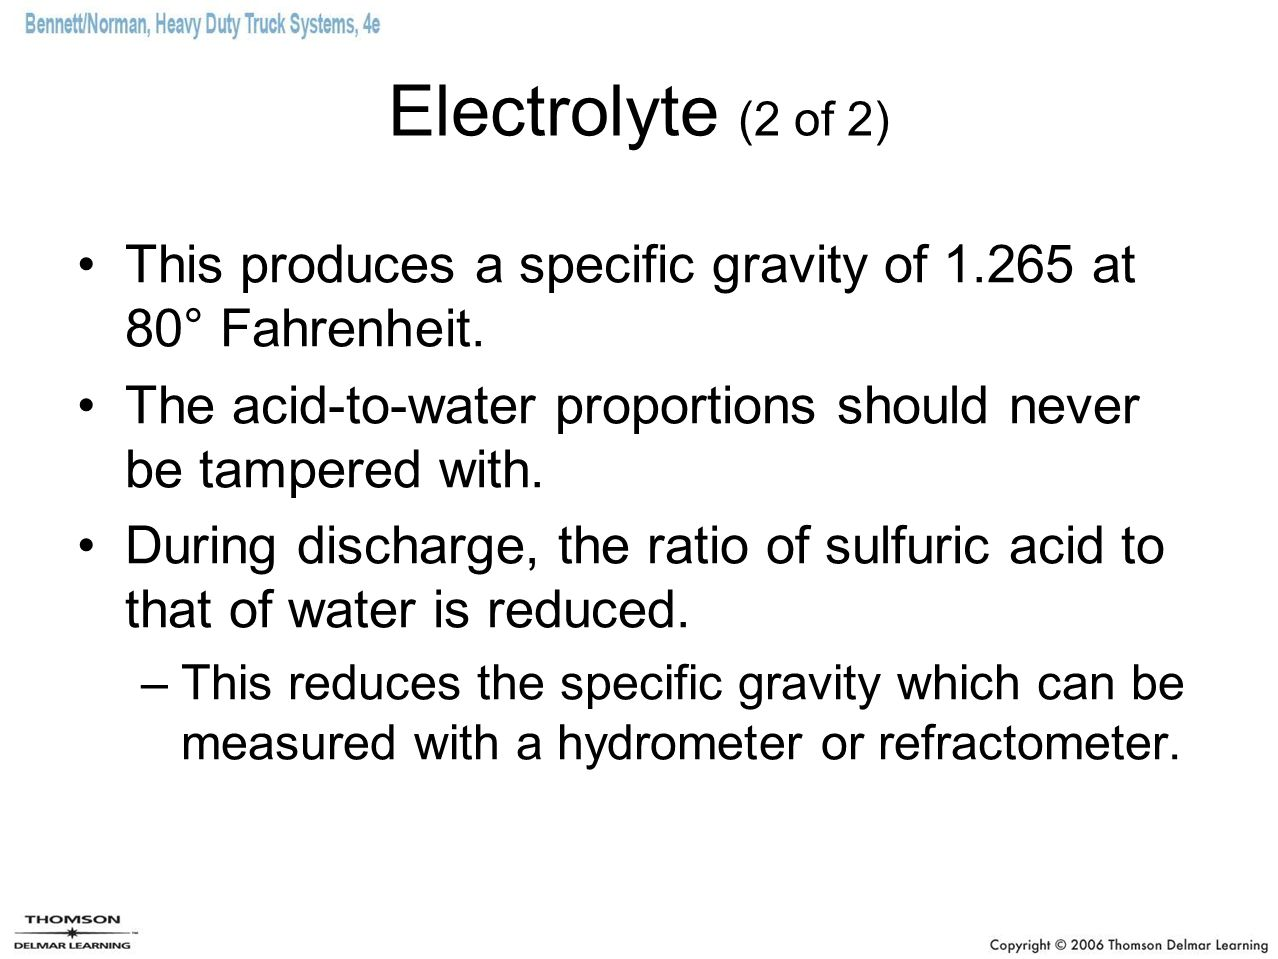 Electrolyte (2 of 2) This produces a specific gravity of at 80° Fahrenheit. The acid-to-water proportions should never be tampered with.